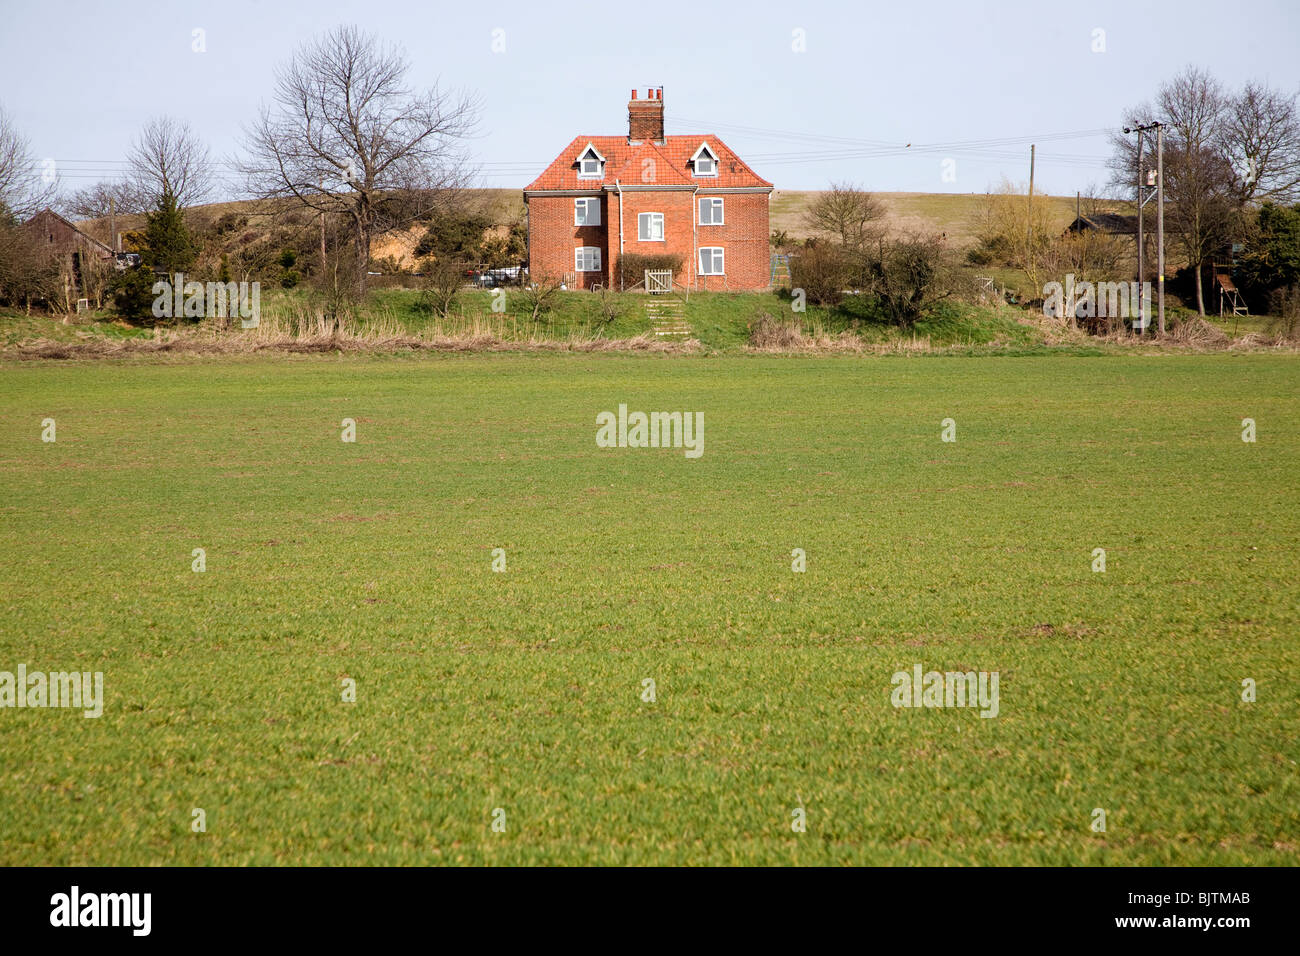 Cherry Tree Farm ferme isolée, Great Bealings, Suffolk Banque D'Images